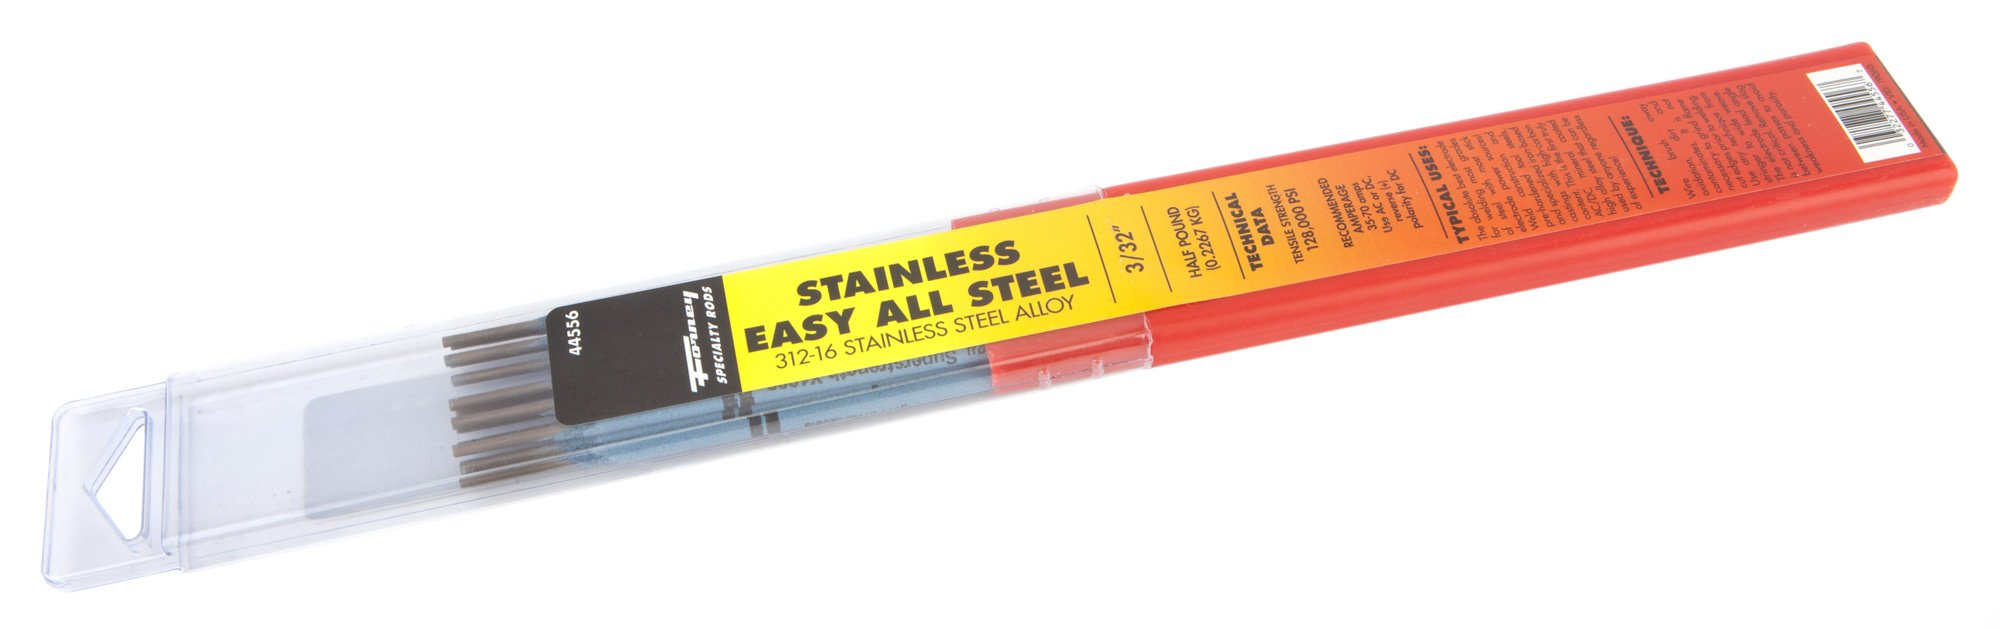 Forney 44556 Stainless Steel Welding Rod, 3/32-Inch, 1/2-Pound